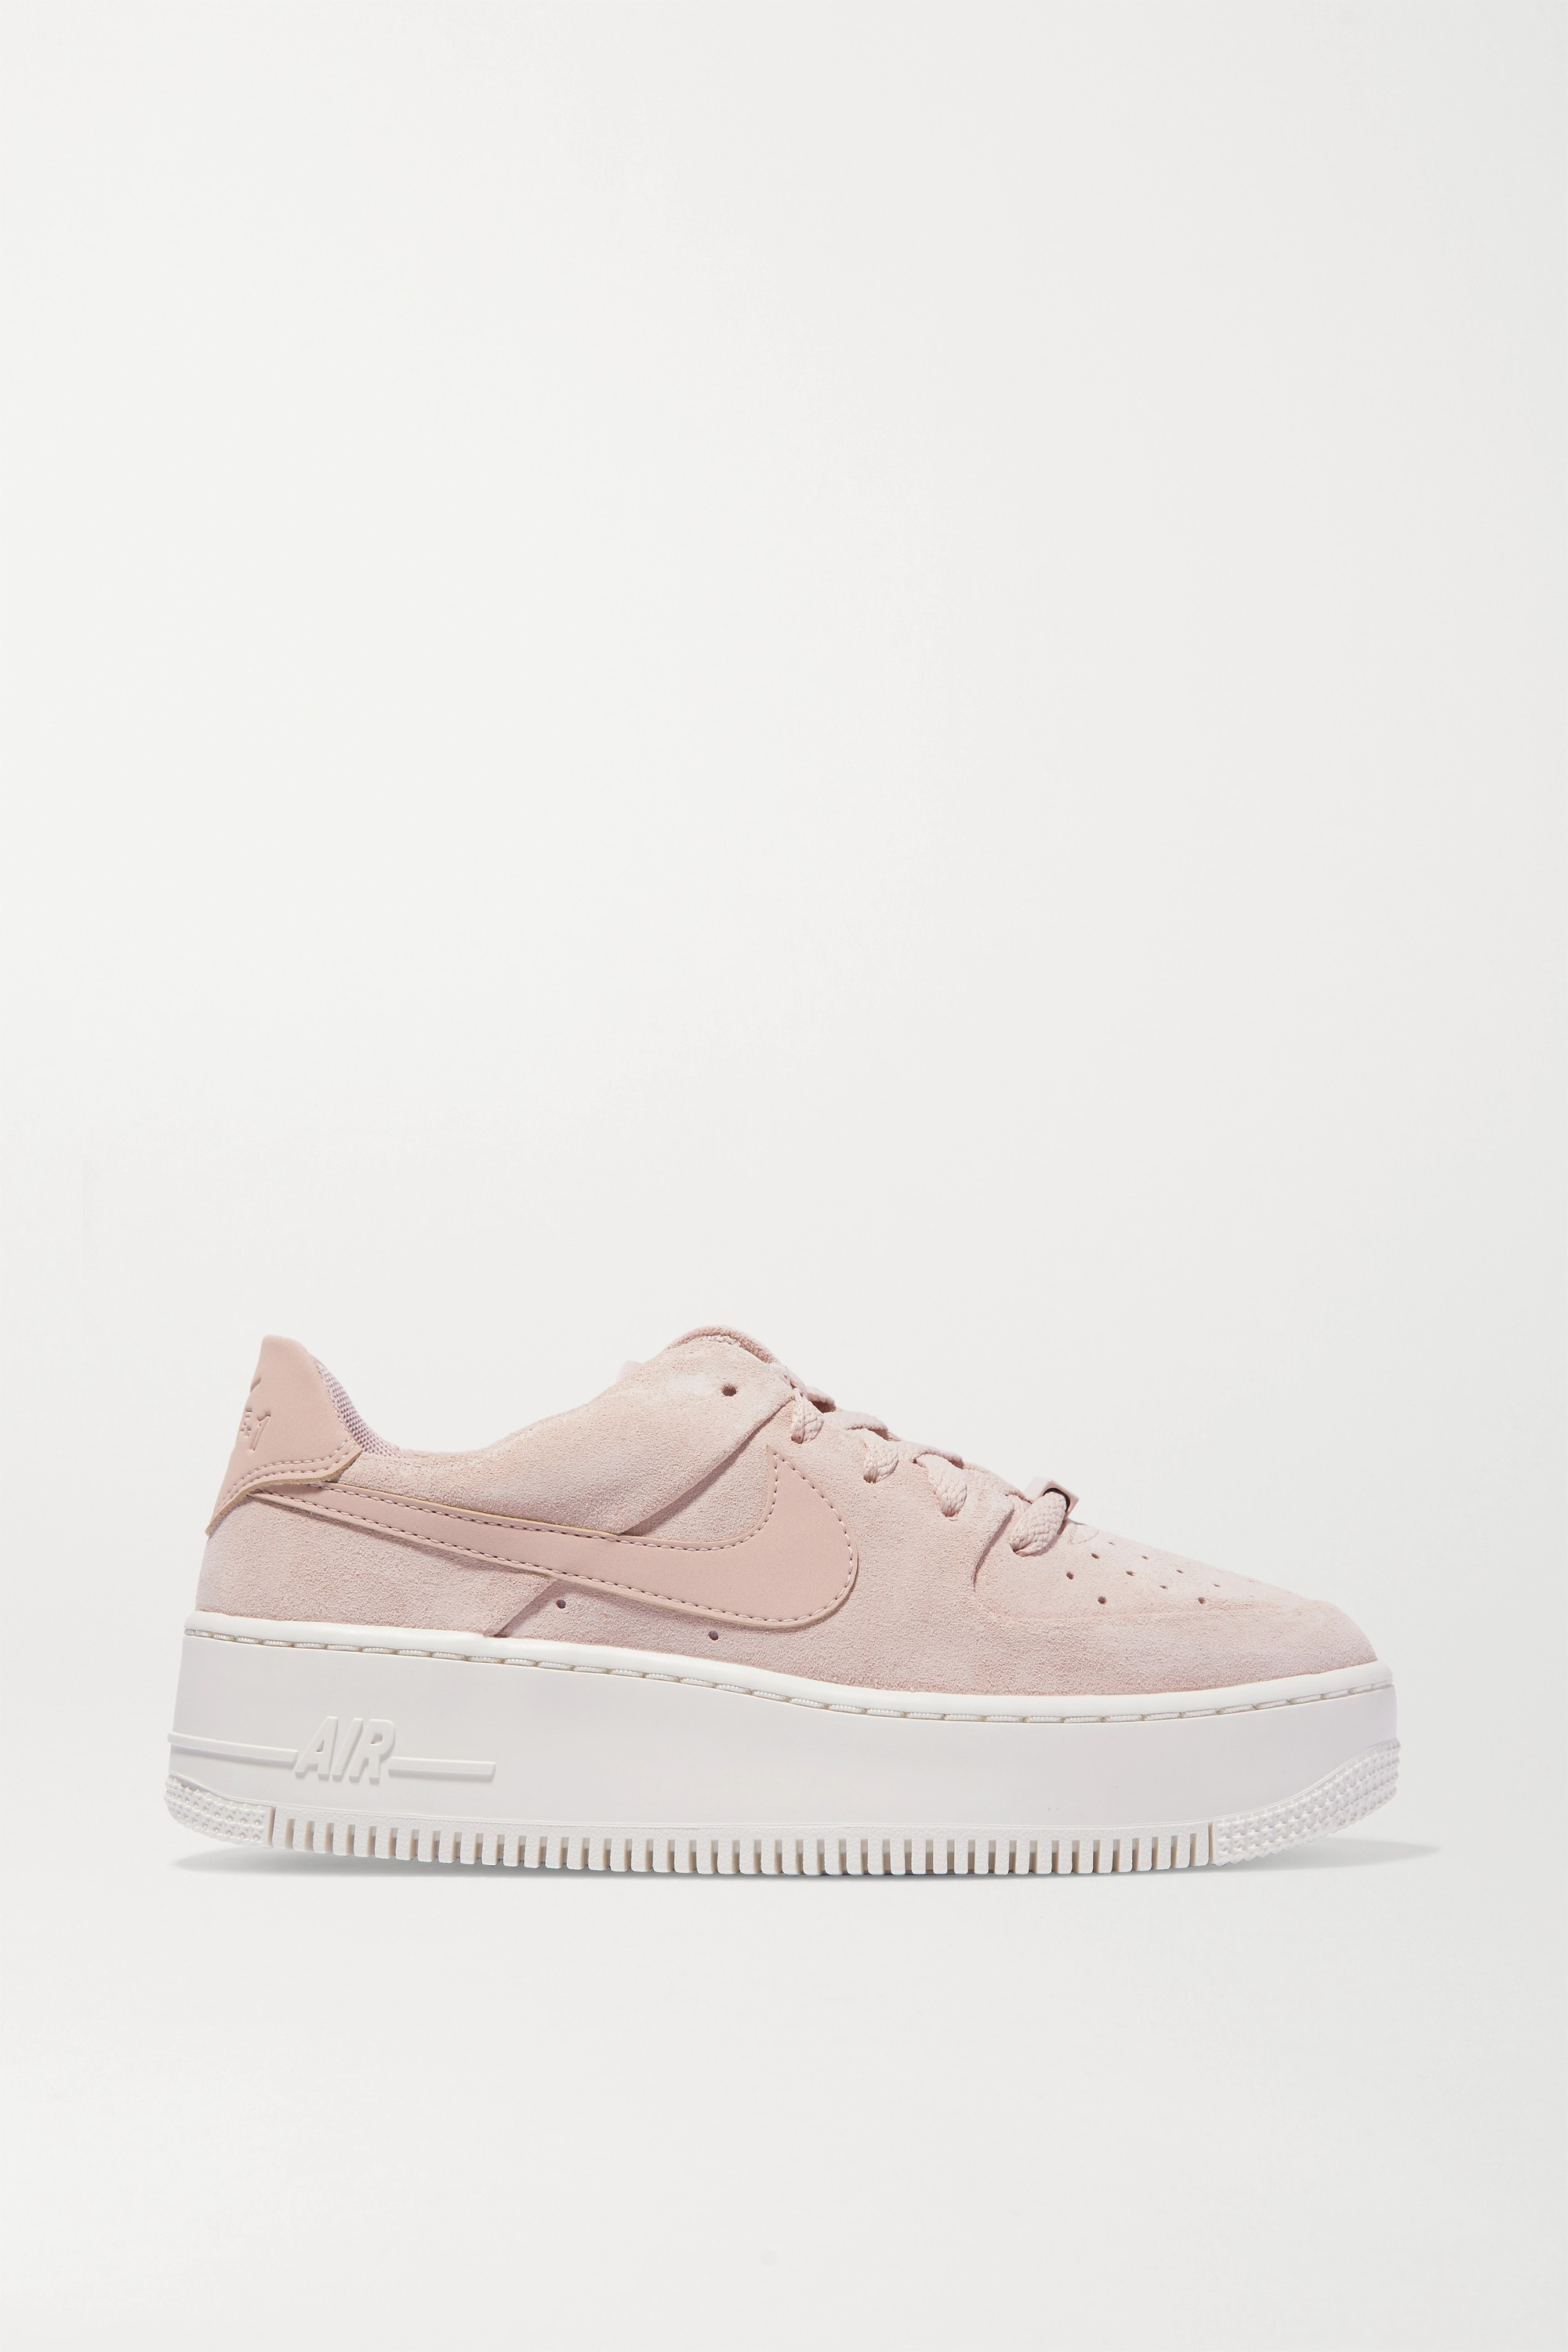 air force 1 sagw